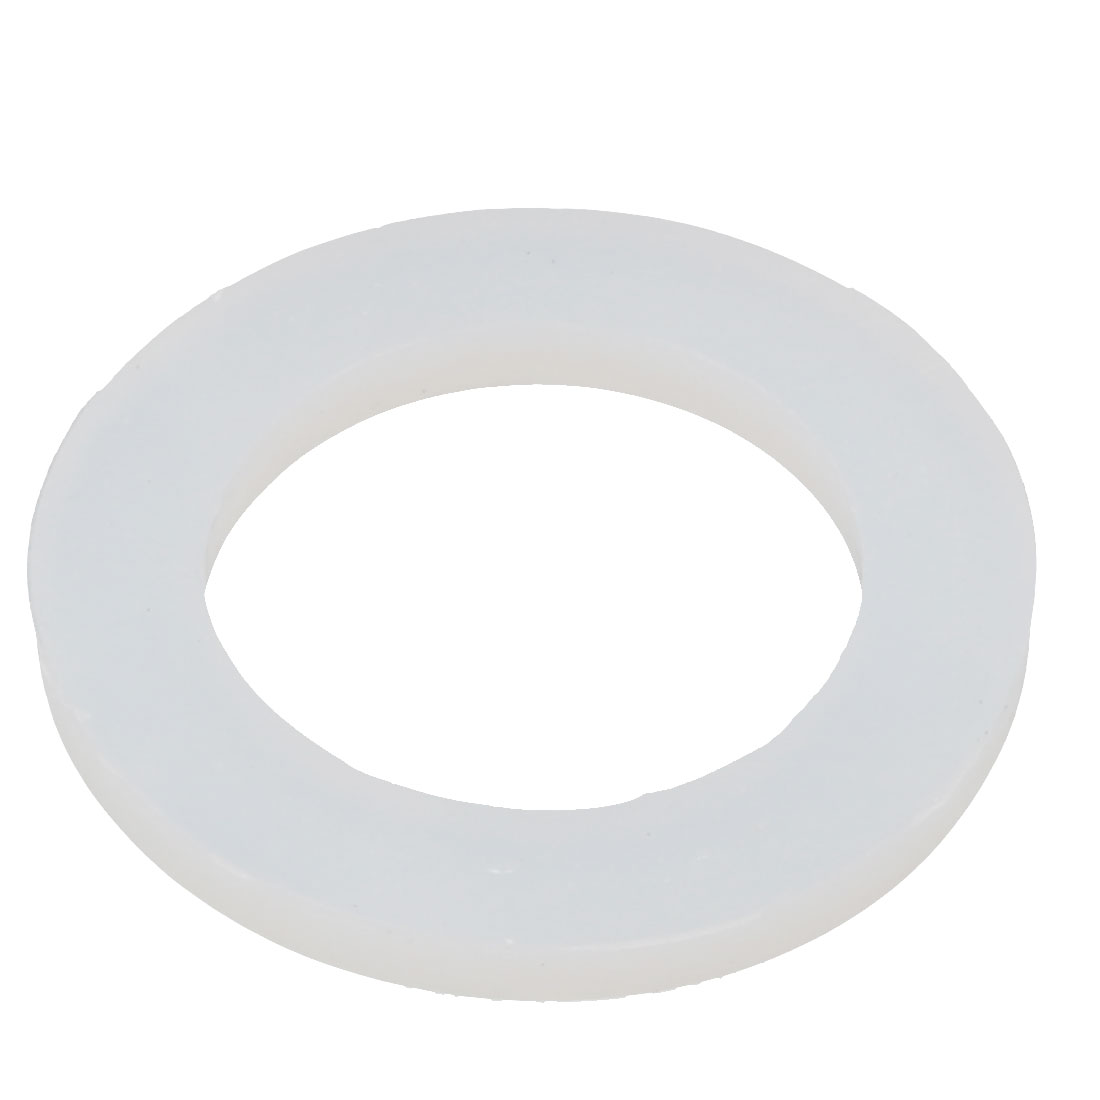 31mmx21mmx3mm O-shaped Sealing Ring Silicone Grommet Gasket White